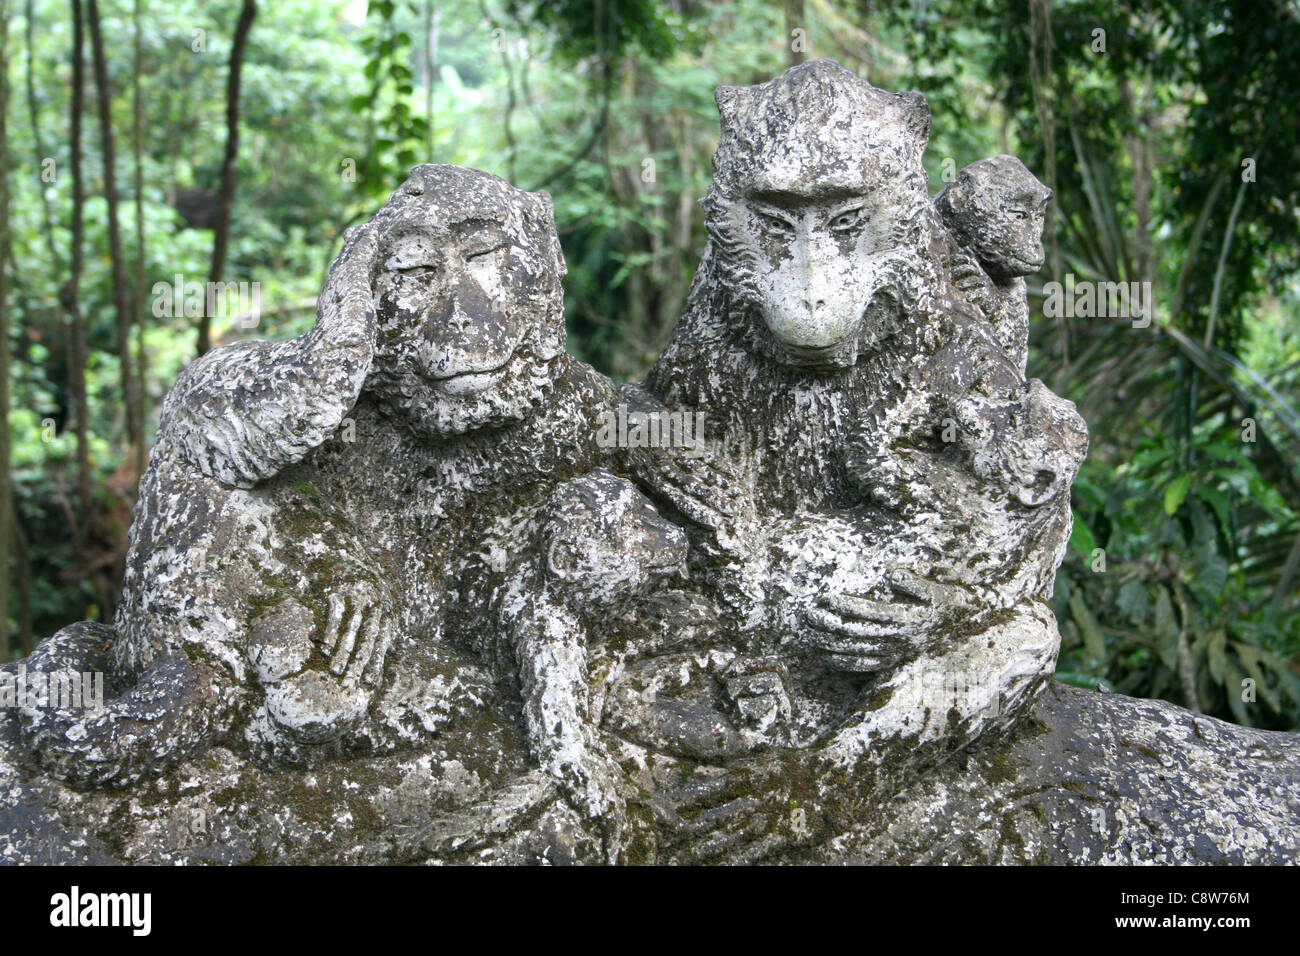 Monkey carving stock photos images